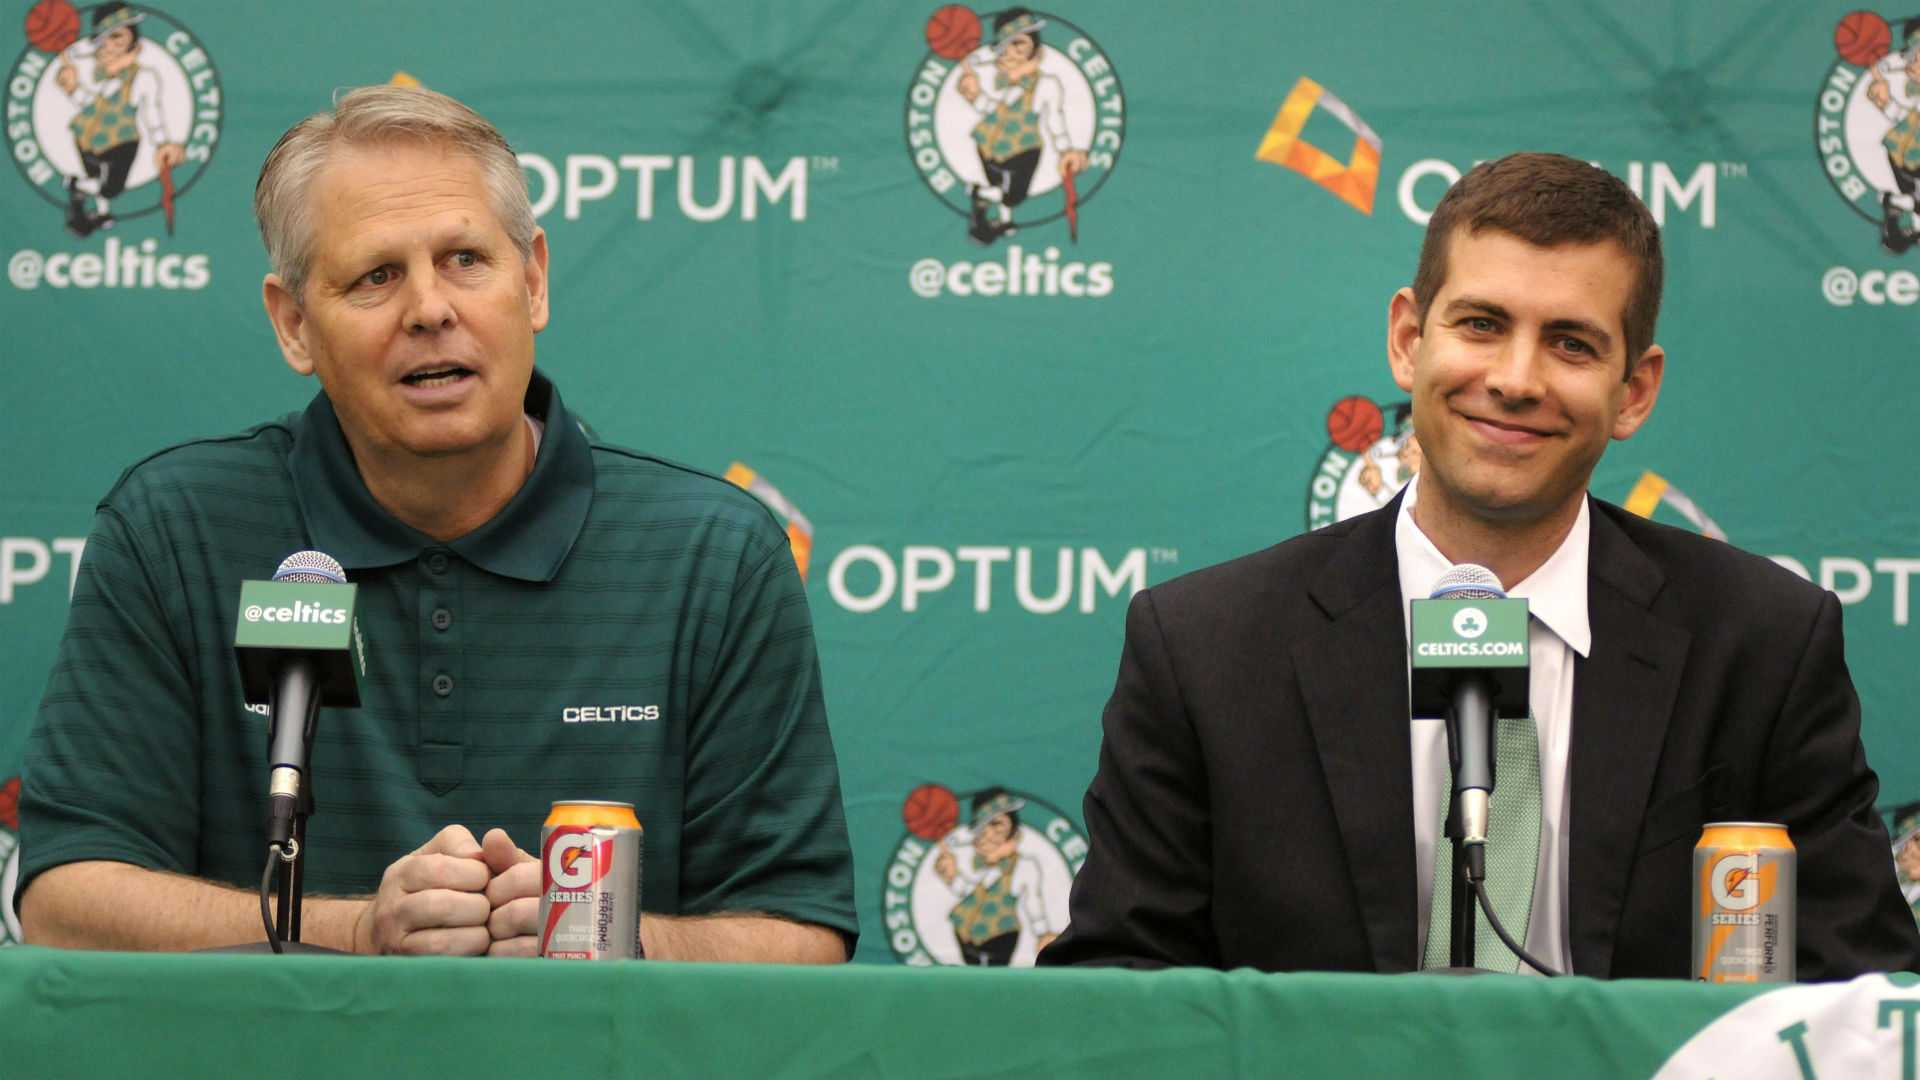 The Celtics are Trying to Trade up in Draft